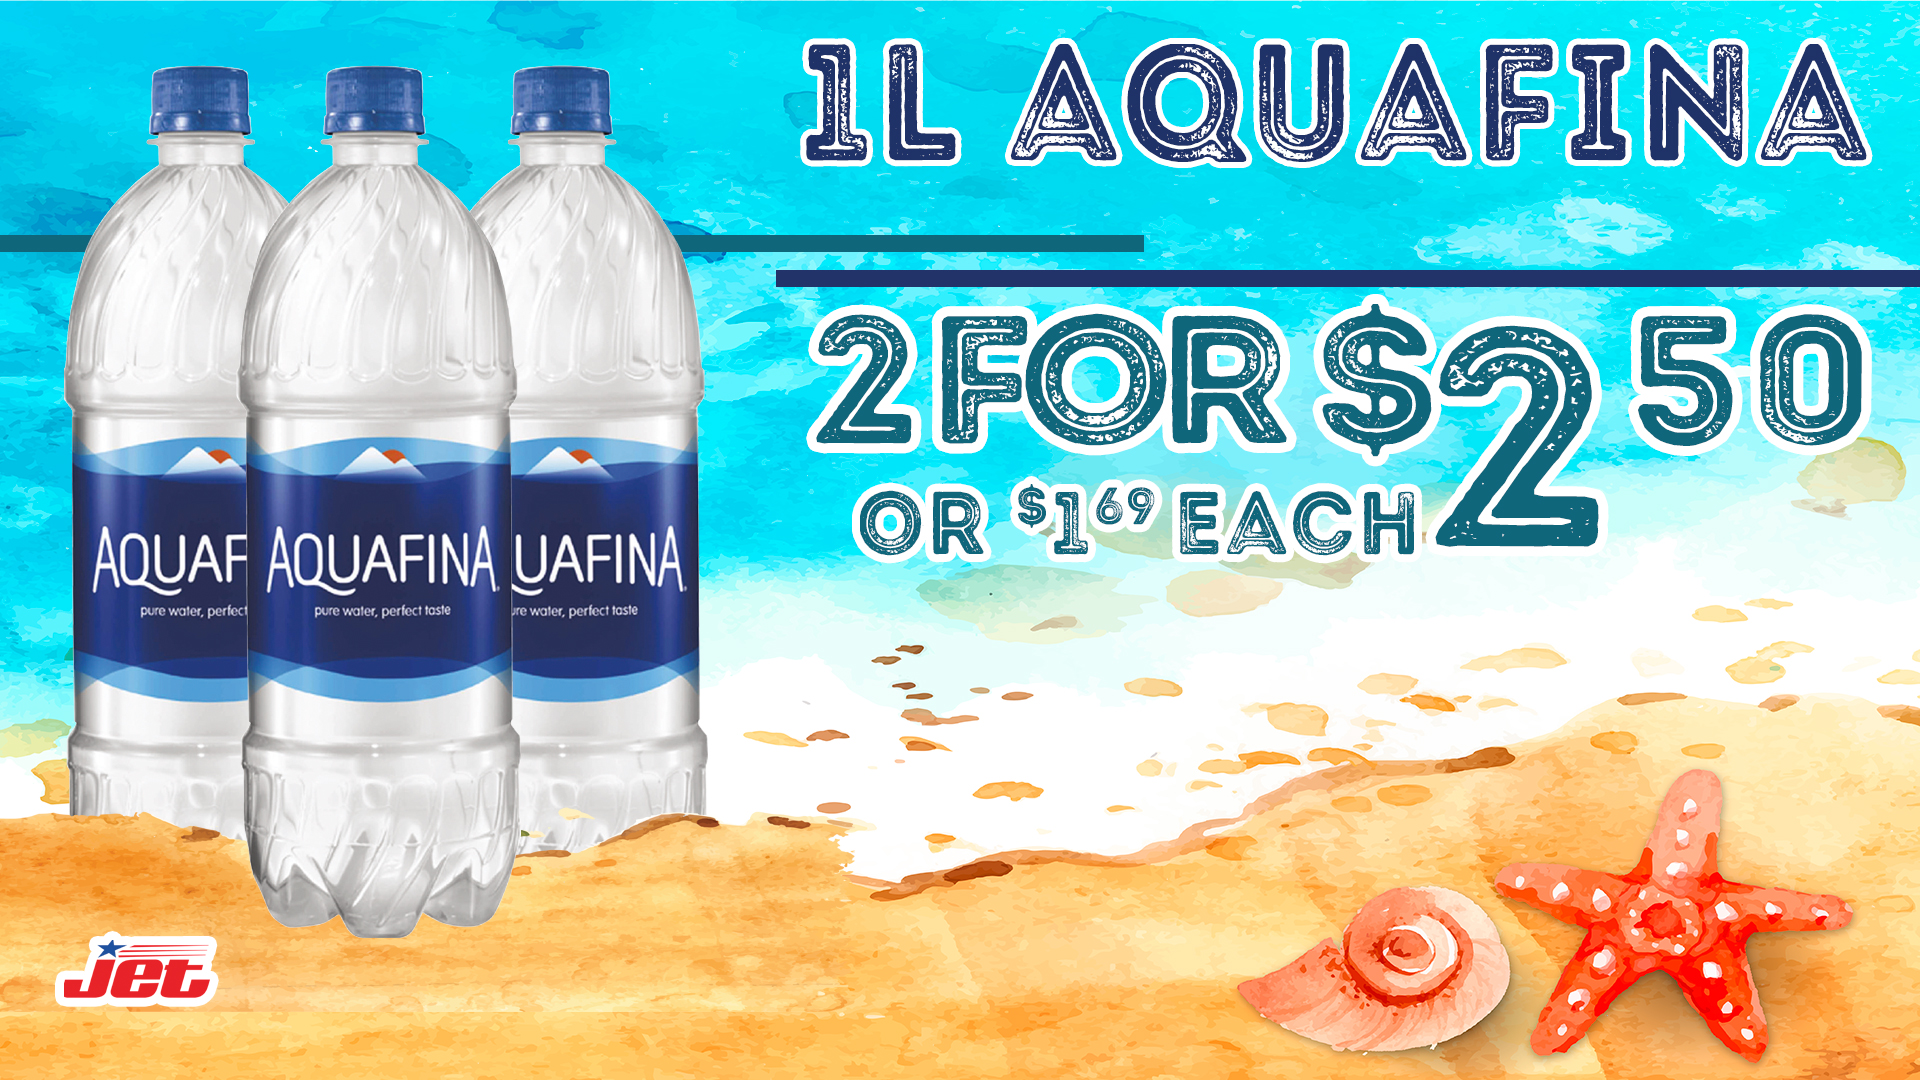 Promo 2 for 2.50 Aquafina